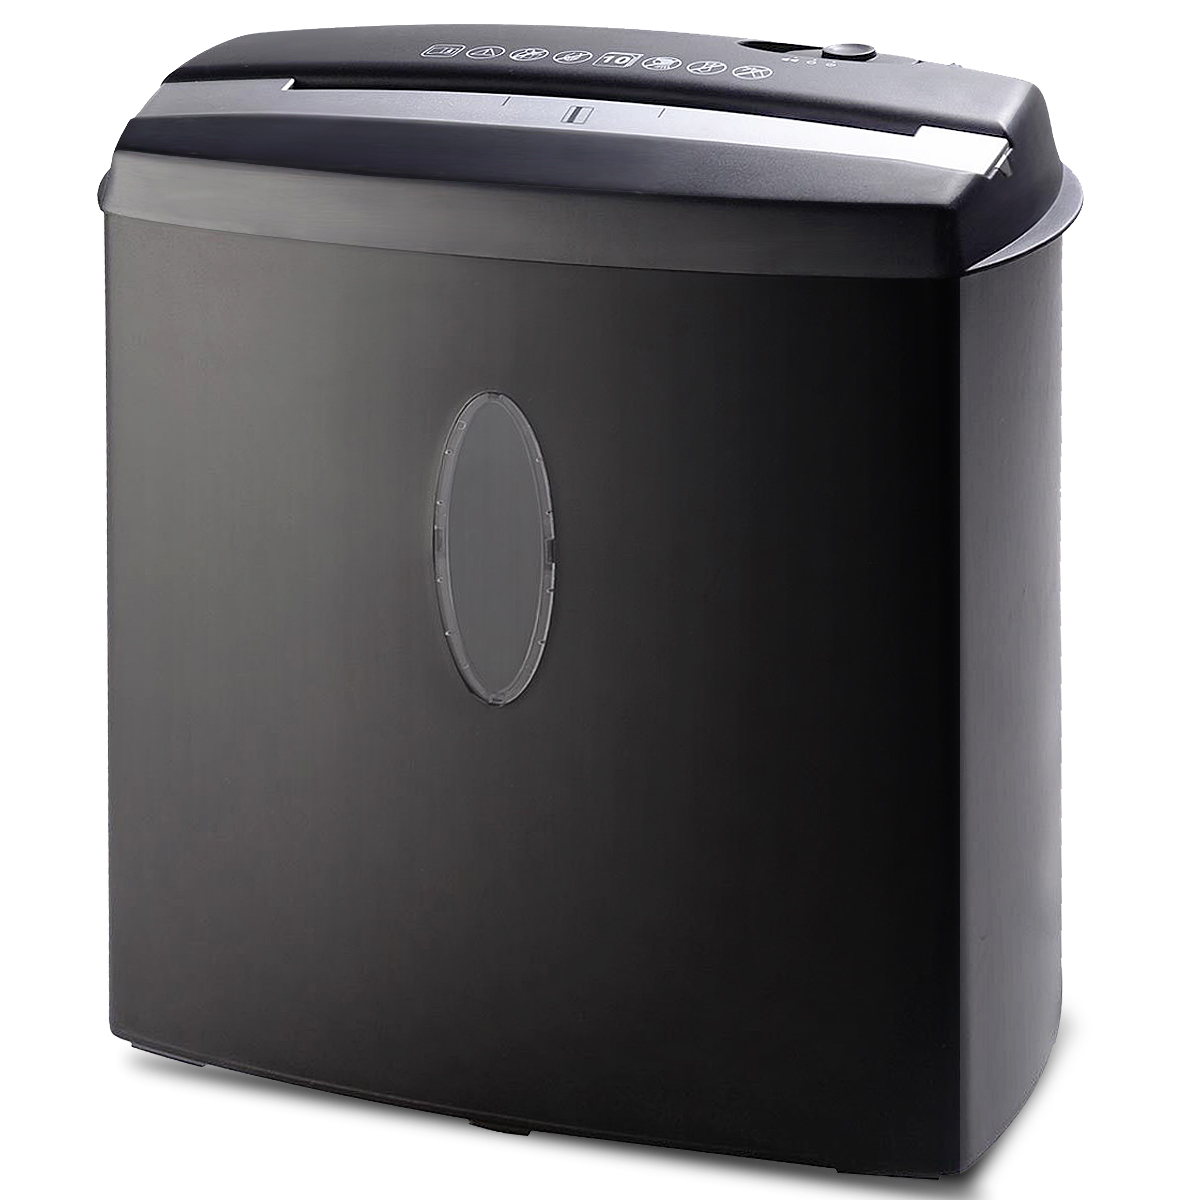 Beau Costway 10 Sheet Cross Cut Paper/Credit Card/Staples Shredder W/ Basket